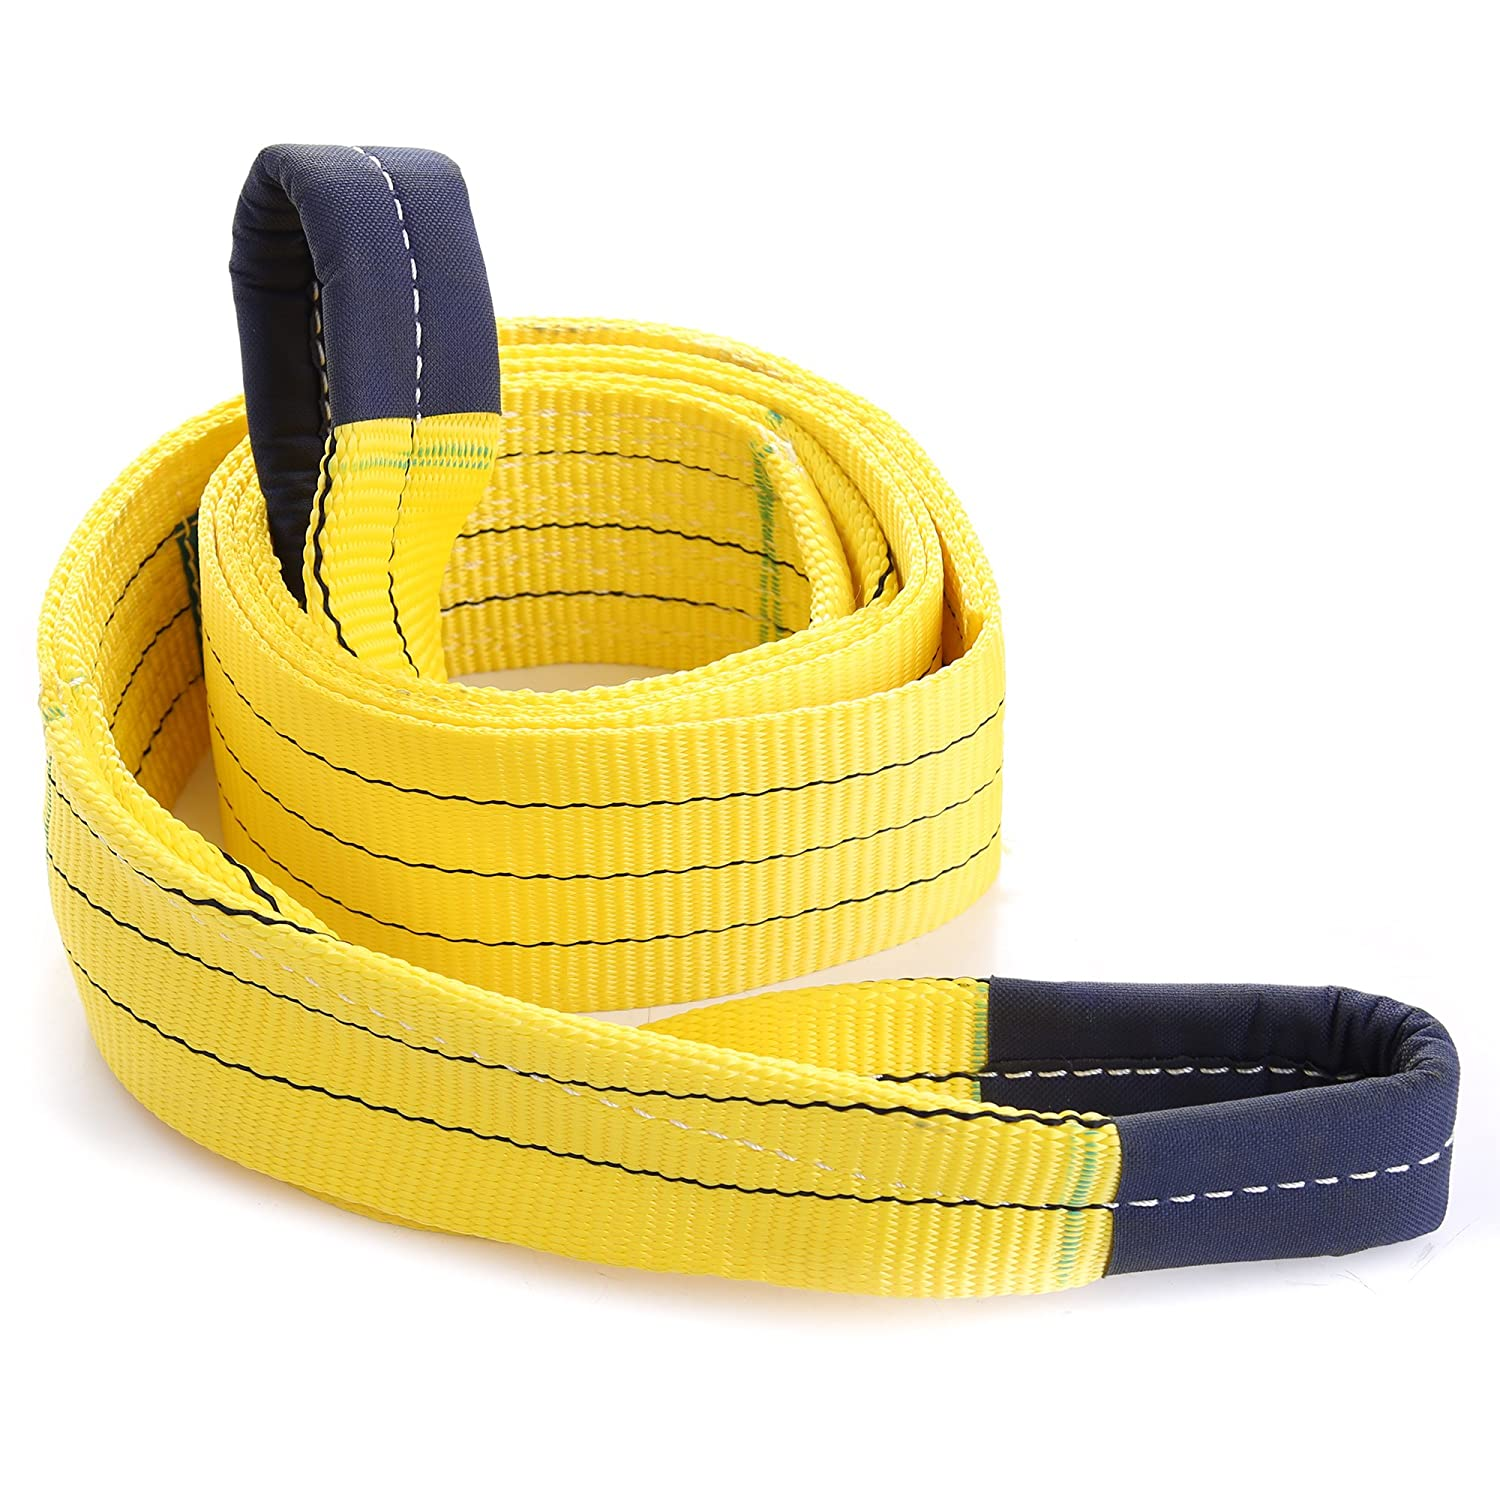 STANKO Tree Saver Recovery Winch Strap 8' x 3.5' Towing Strap 30000 Lbs Capacity Heavy Dury Strap UA (8' x 3.5')